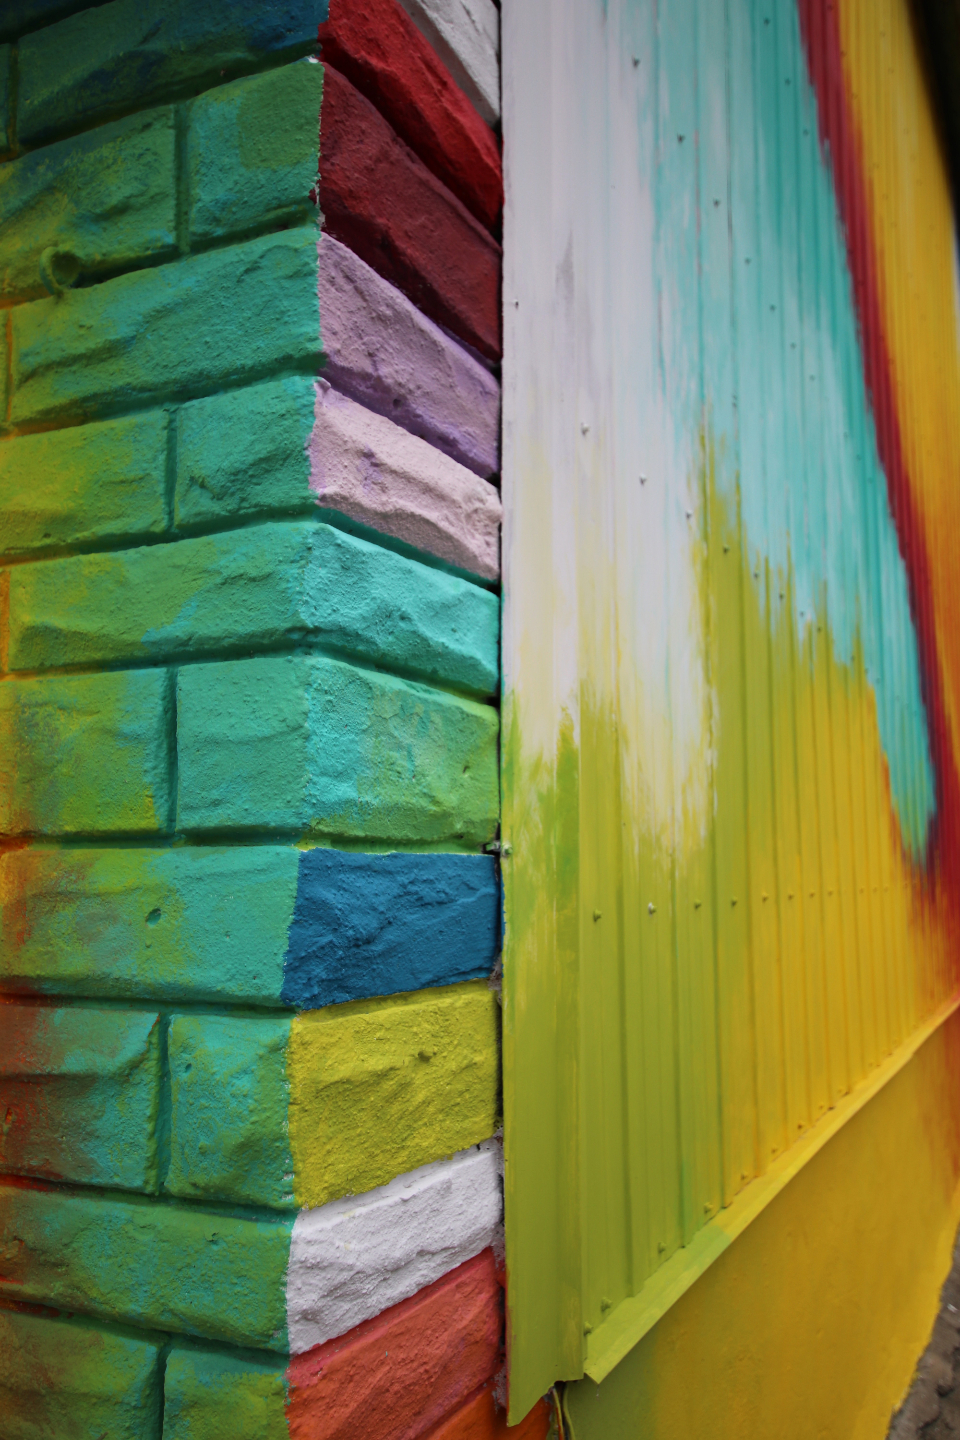 colorful brick wall corner building urban street design art pattern paint exterior colors